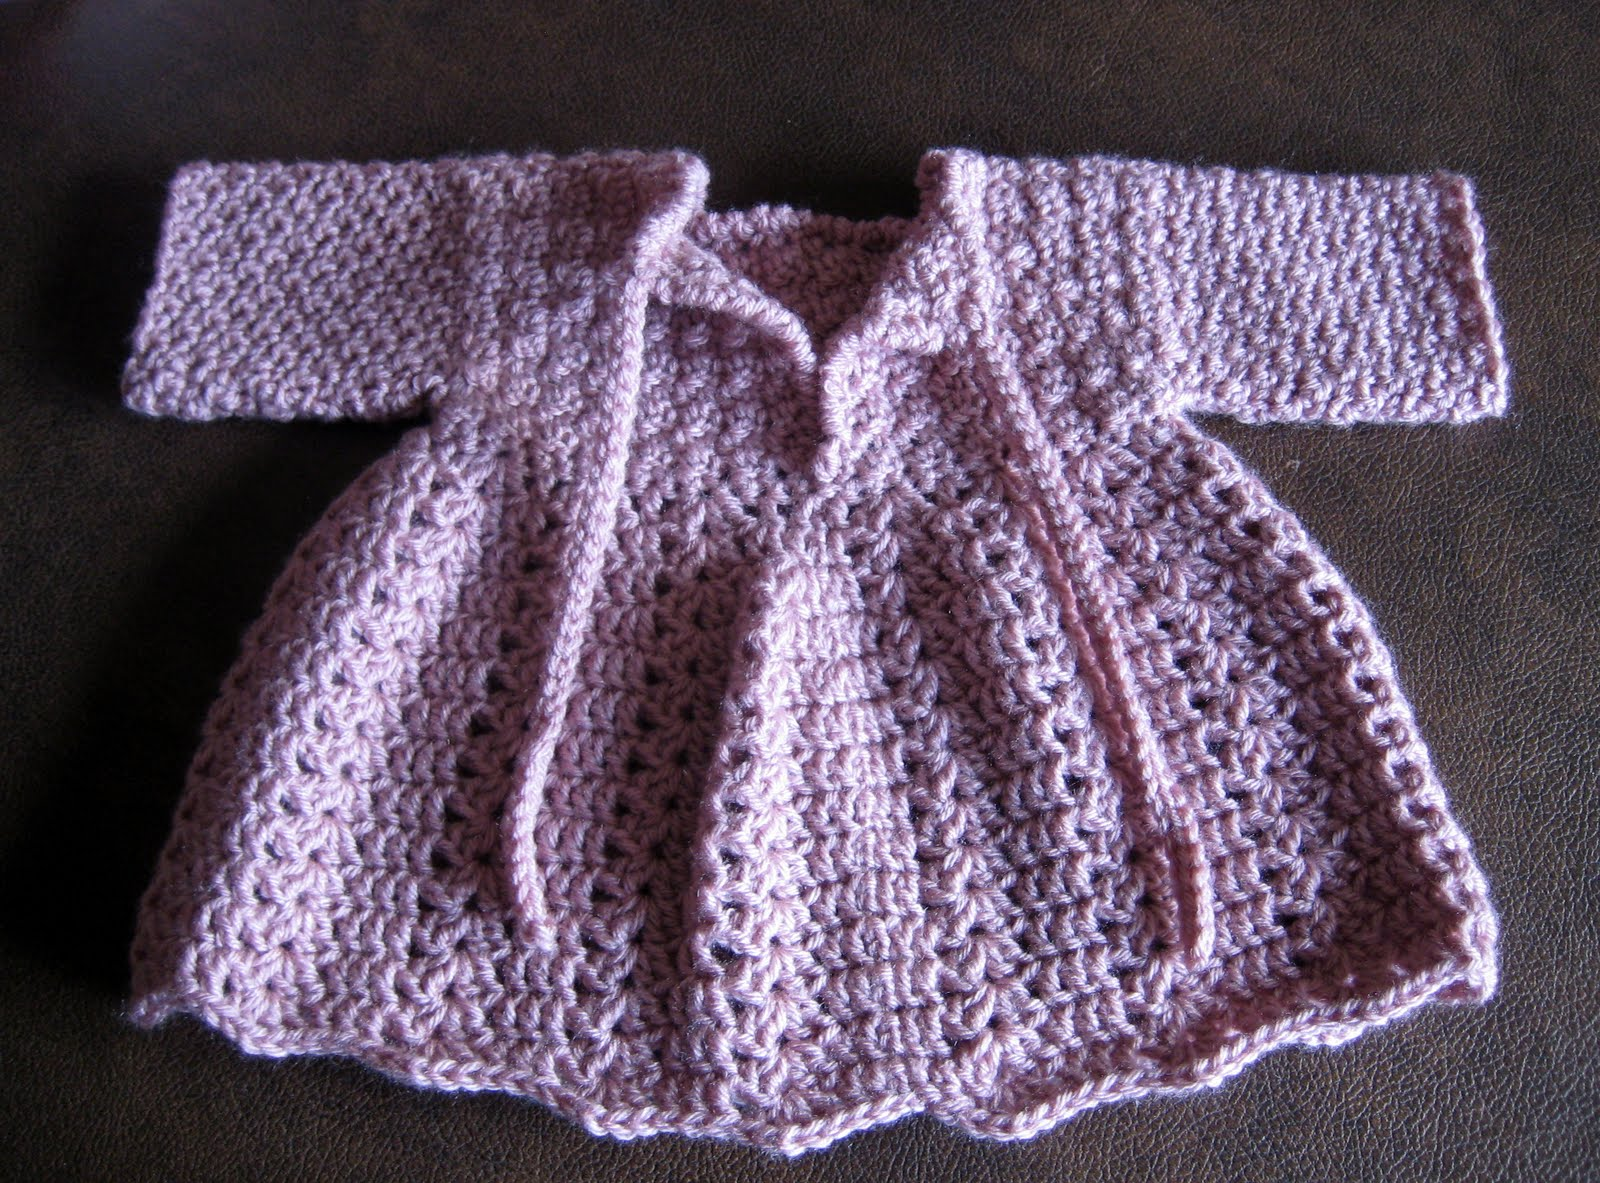 Knotty Generation: Crochet Baby Winter Dress